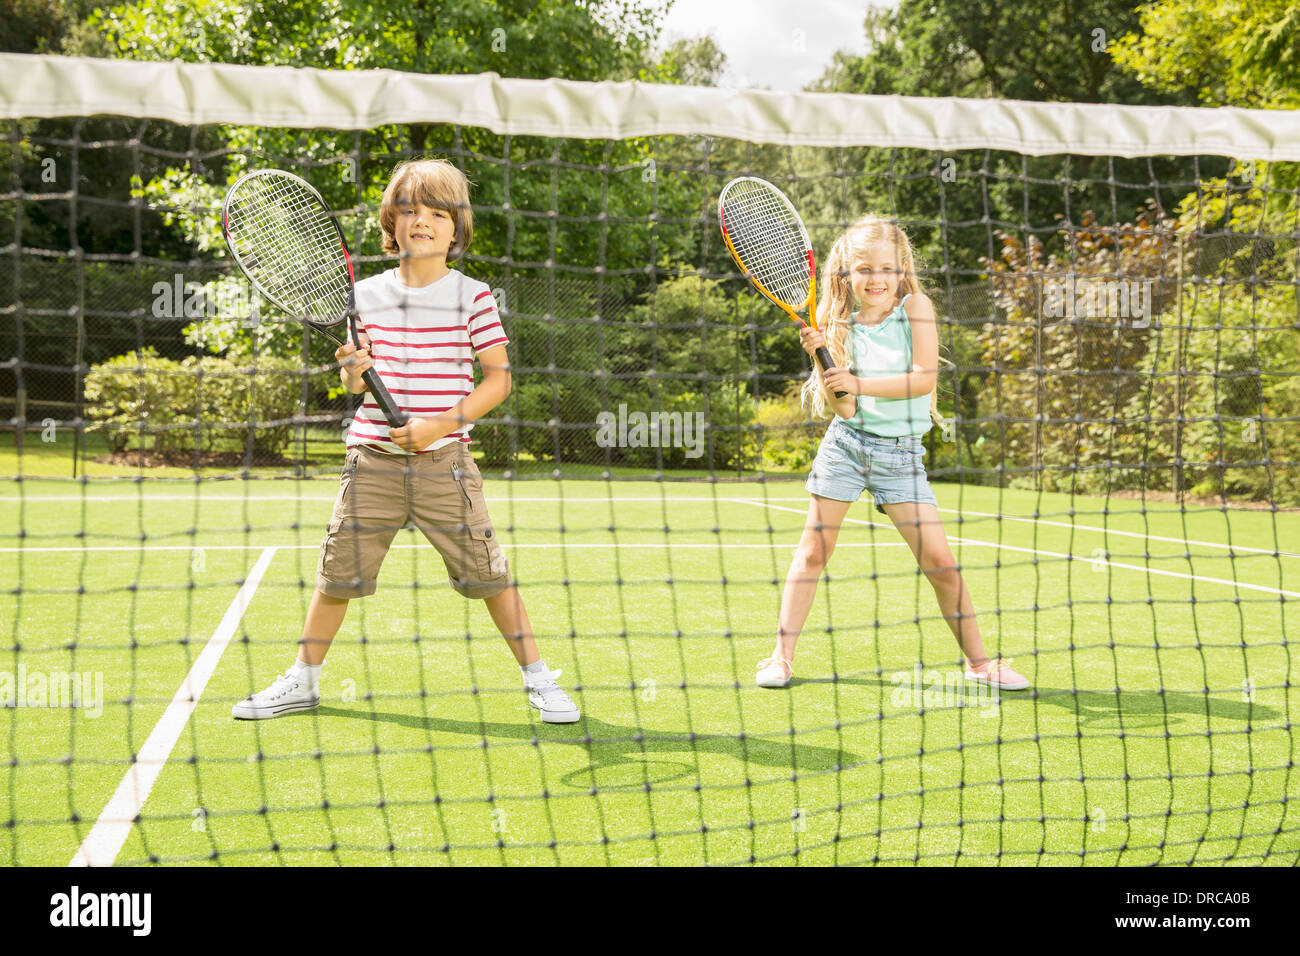 Enfants jouant au tennis sur gazon Photo Stock